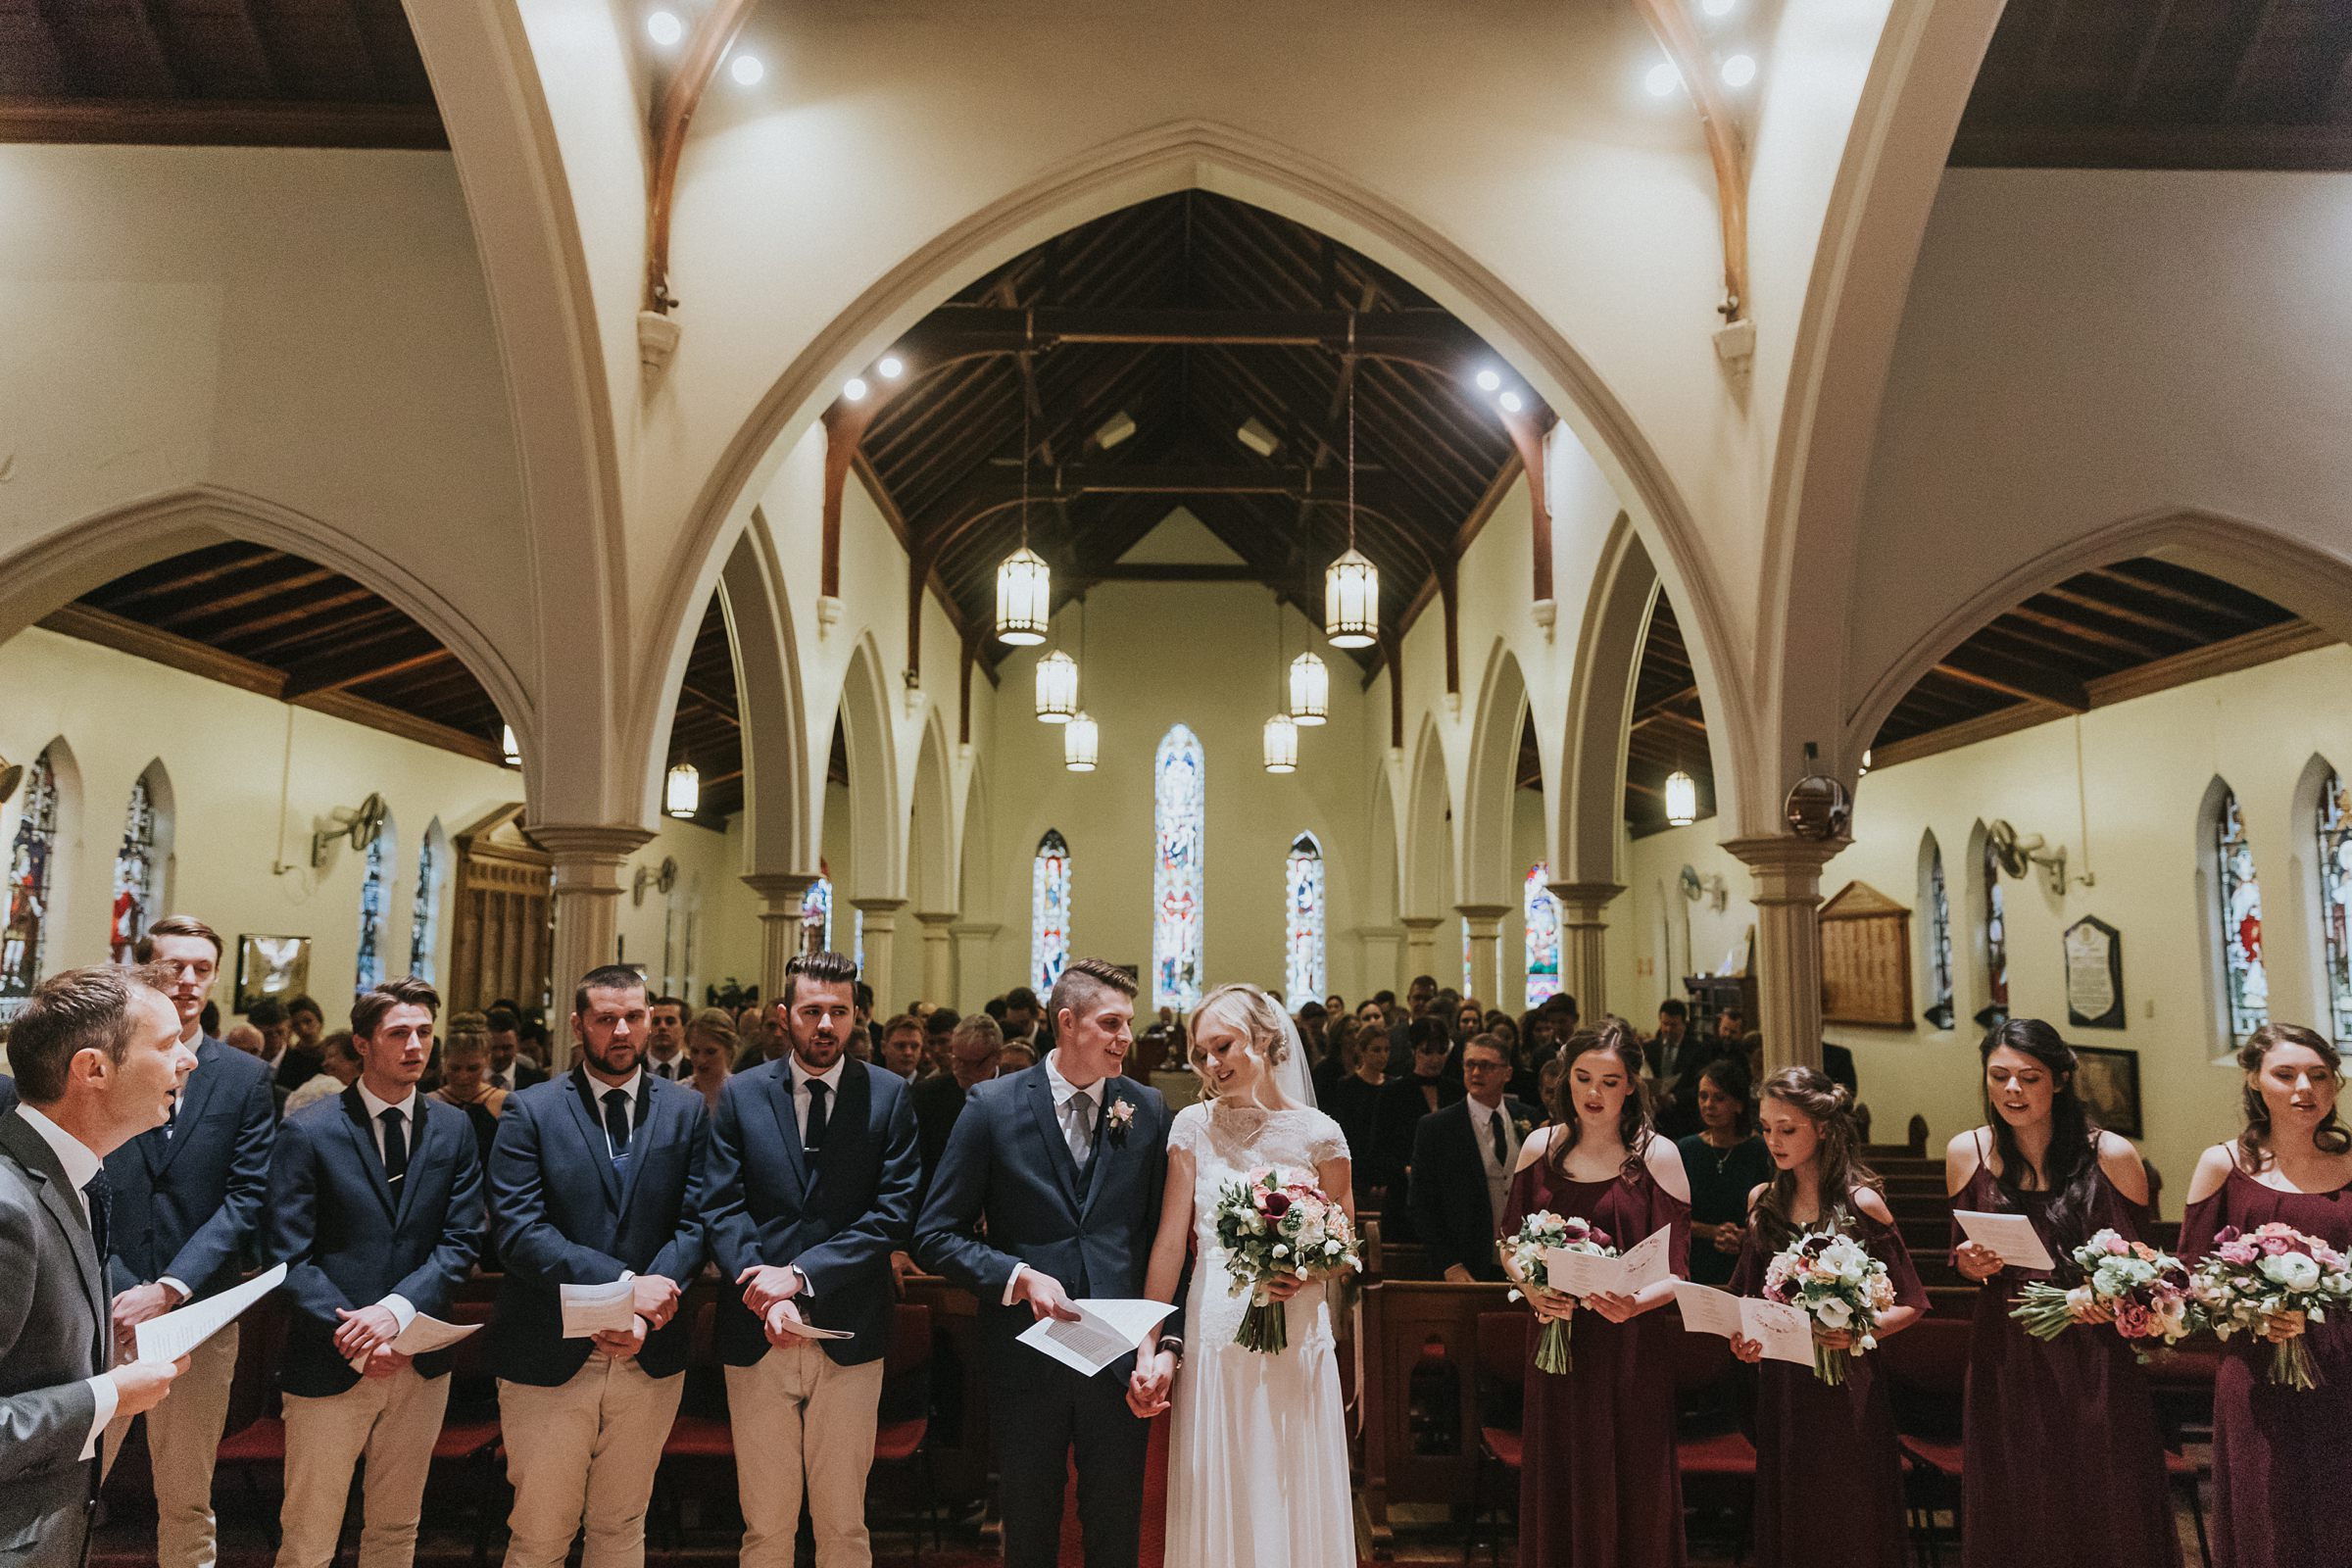 bride and groom sing hymns during wedding ceremony at st jude's anglican church in bowral